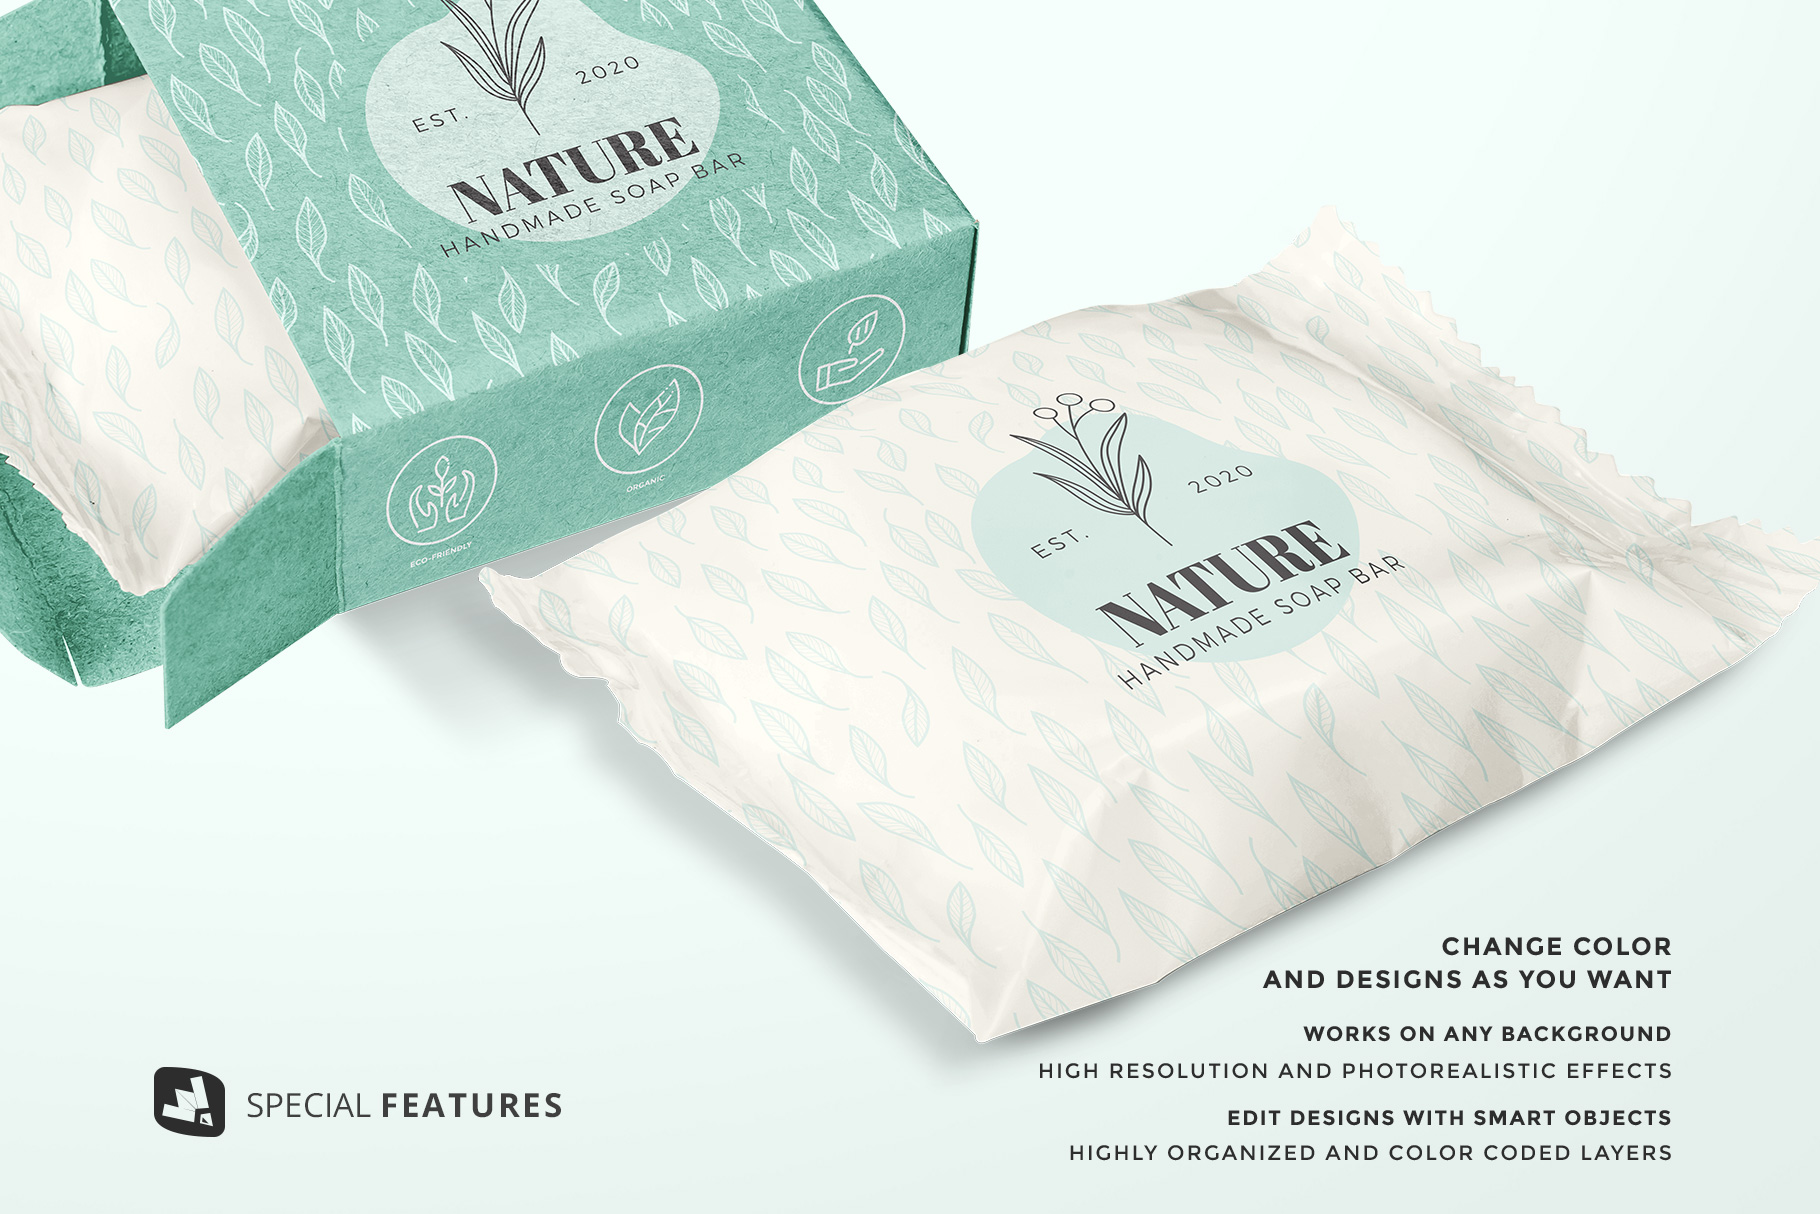 special features of the hand made soap bar packaging mockup